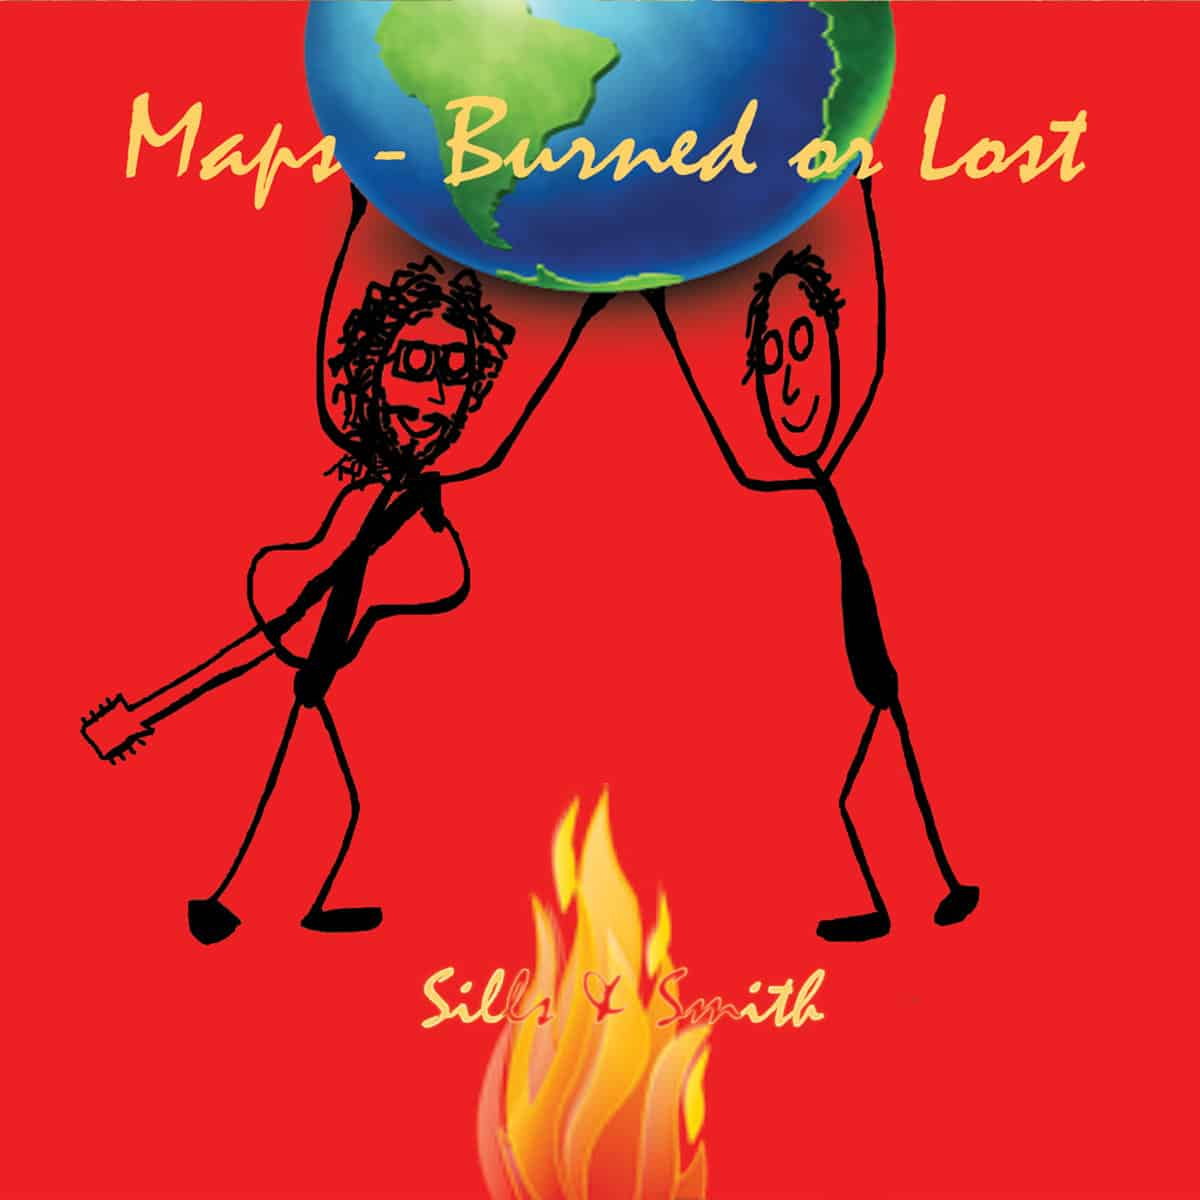 Maps ~ Burned or Lost by Sills & Smith